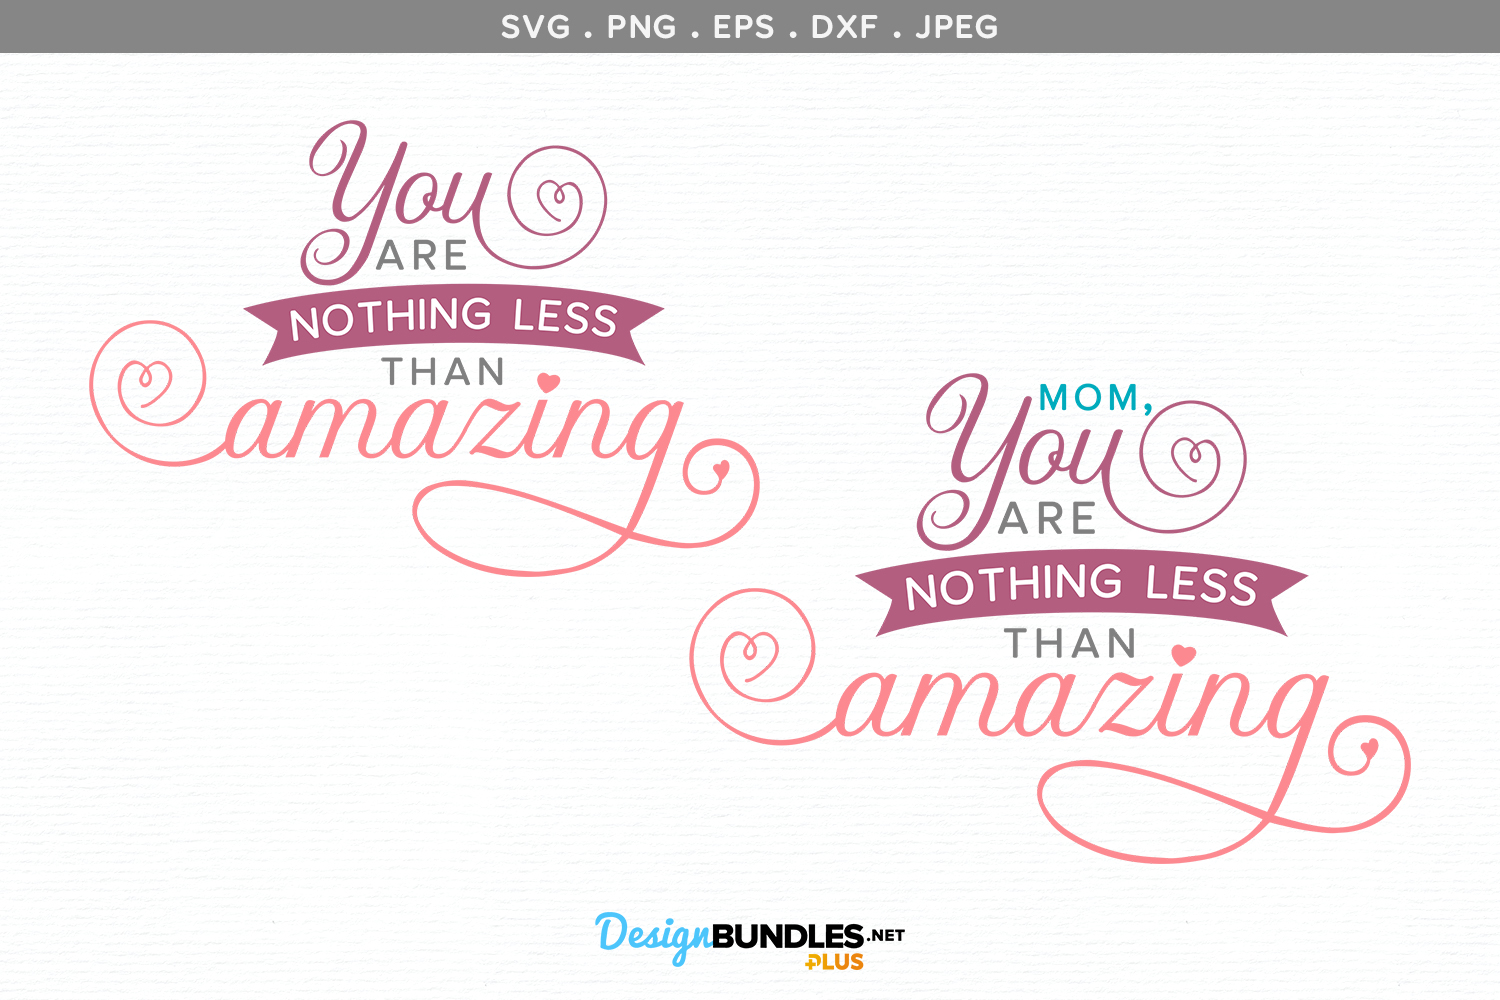 Mom, You Are Nothing Less Than Amazing - svg cut files example image 2